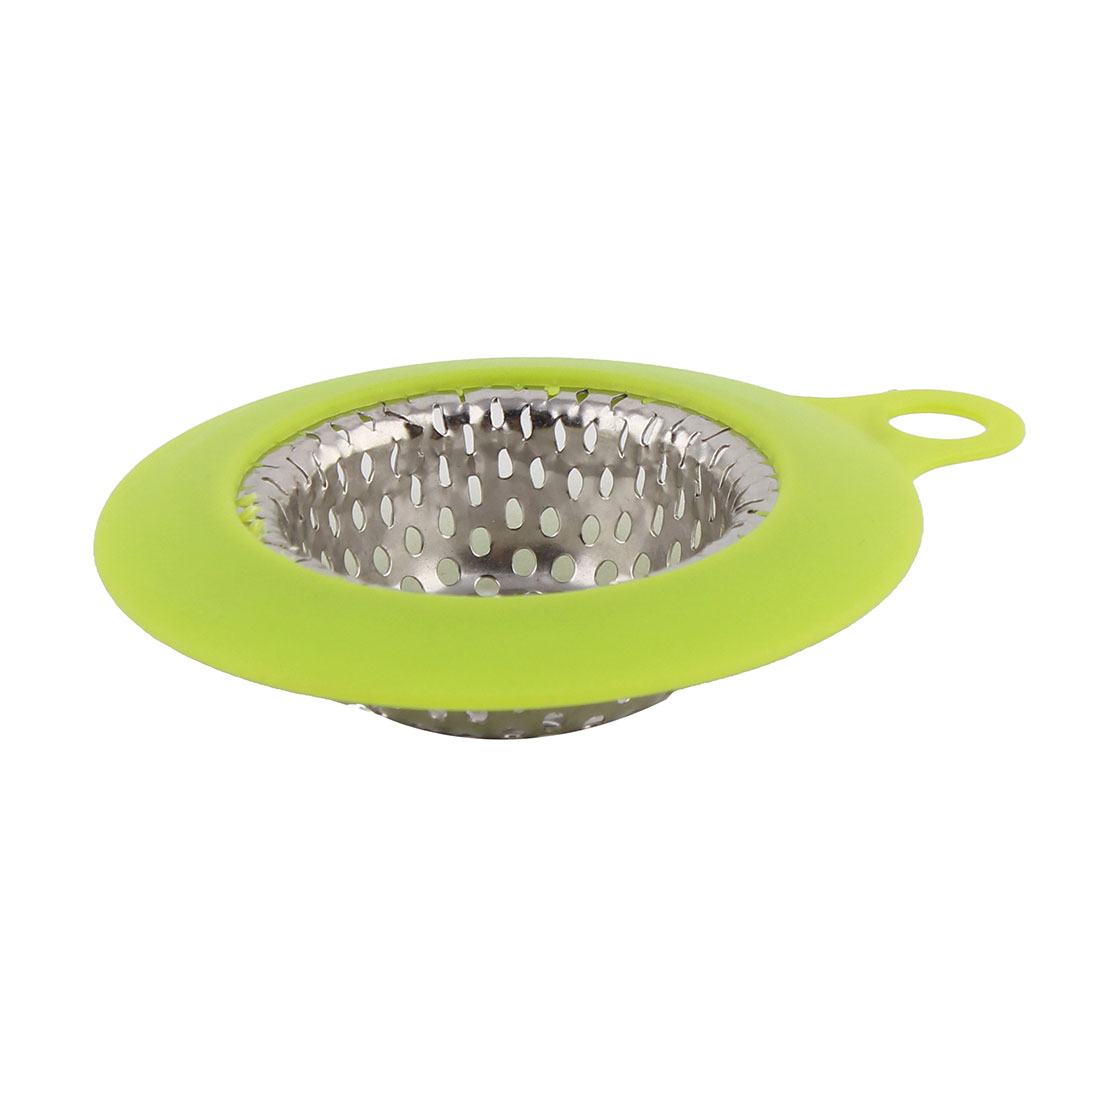 Home Stainless Steel Round Nonslip Garbage Sink Strainer Light Green 10.8cm Dia